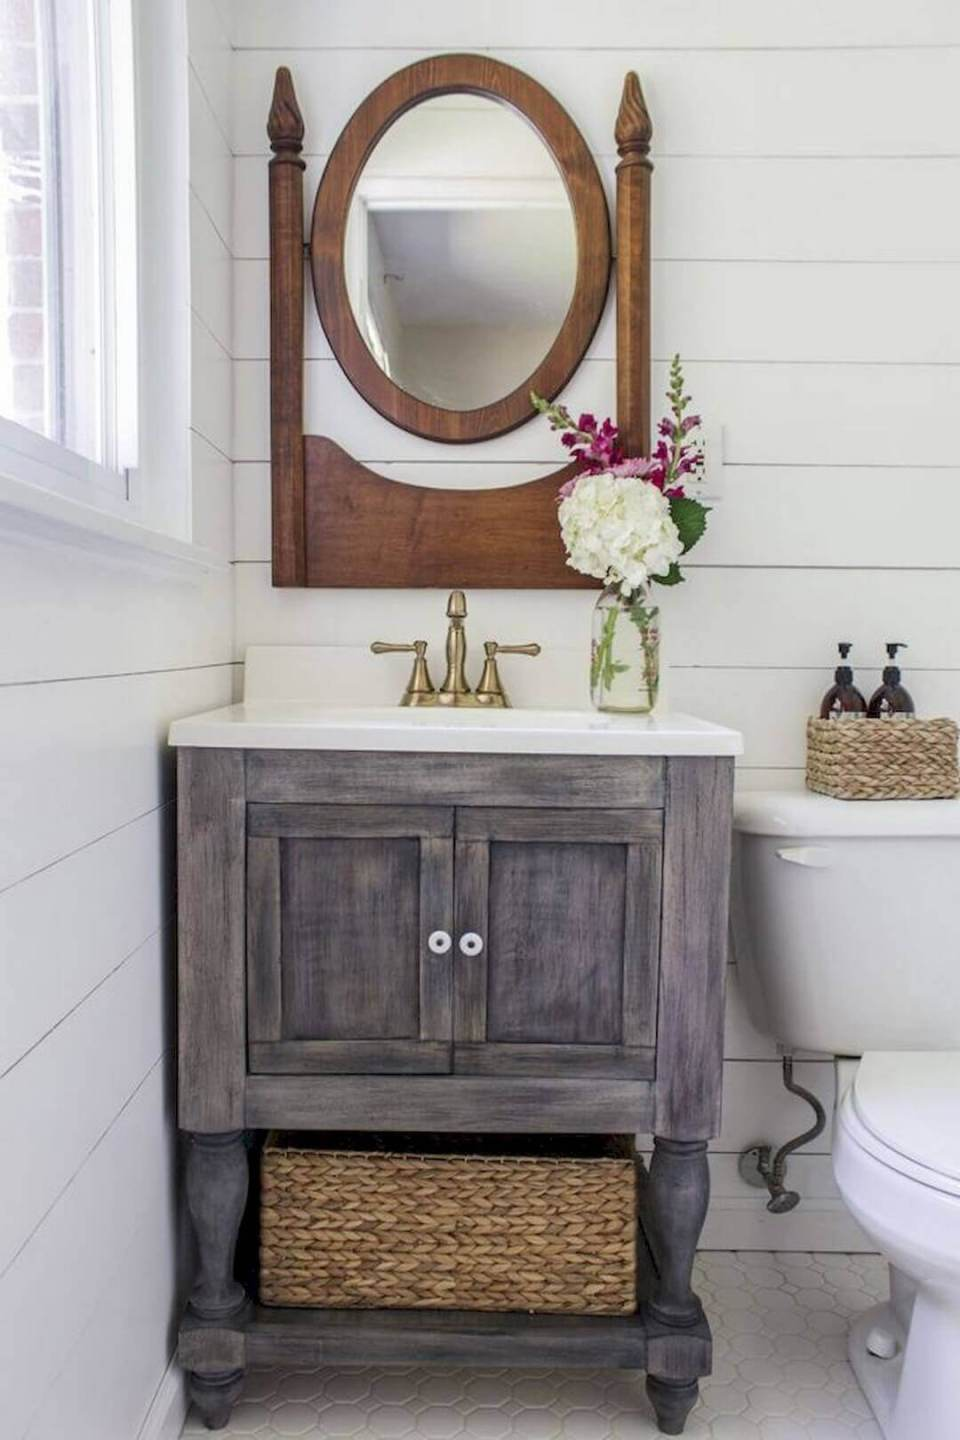 31+ Impressive DIY Rustic Farmhouse Bathroom Vanity Ideas